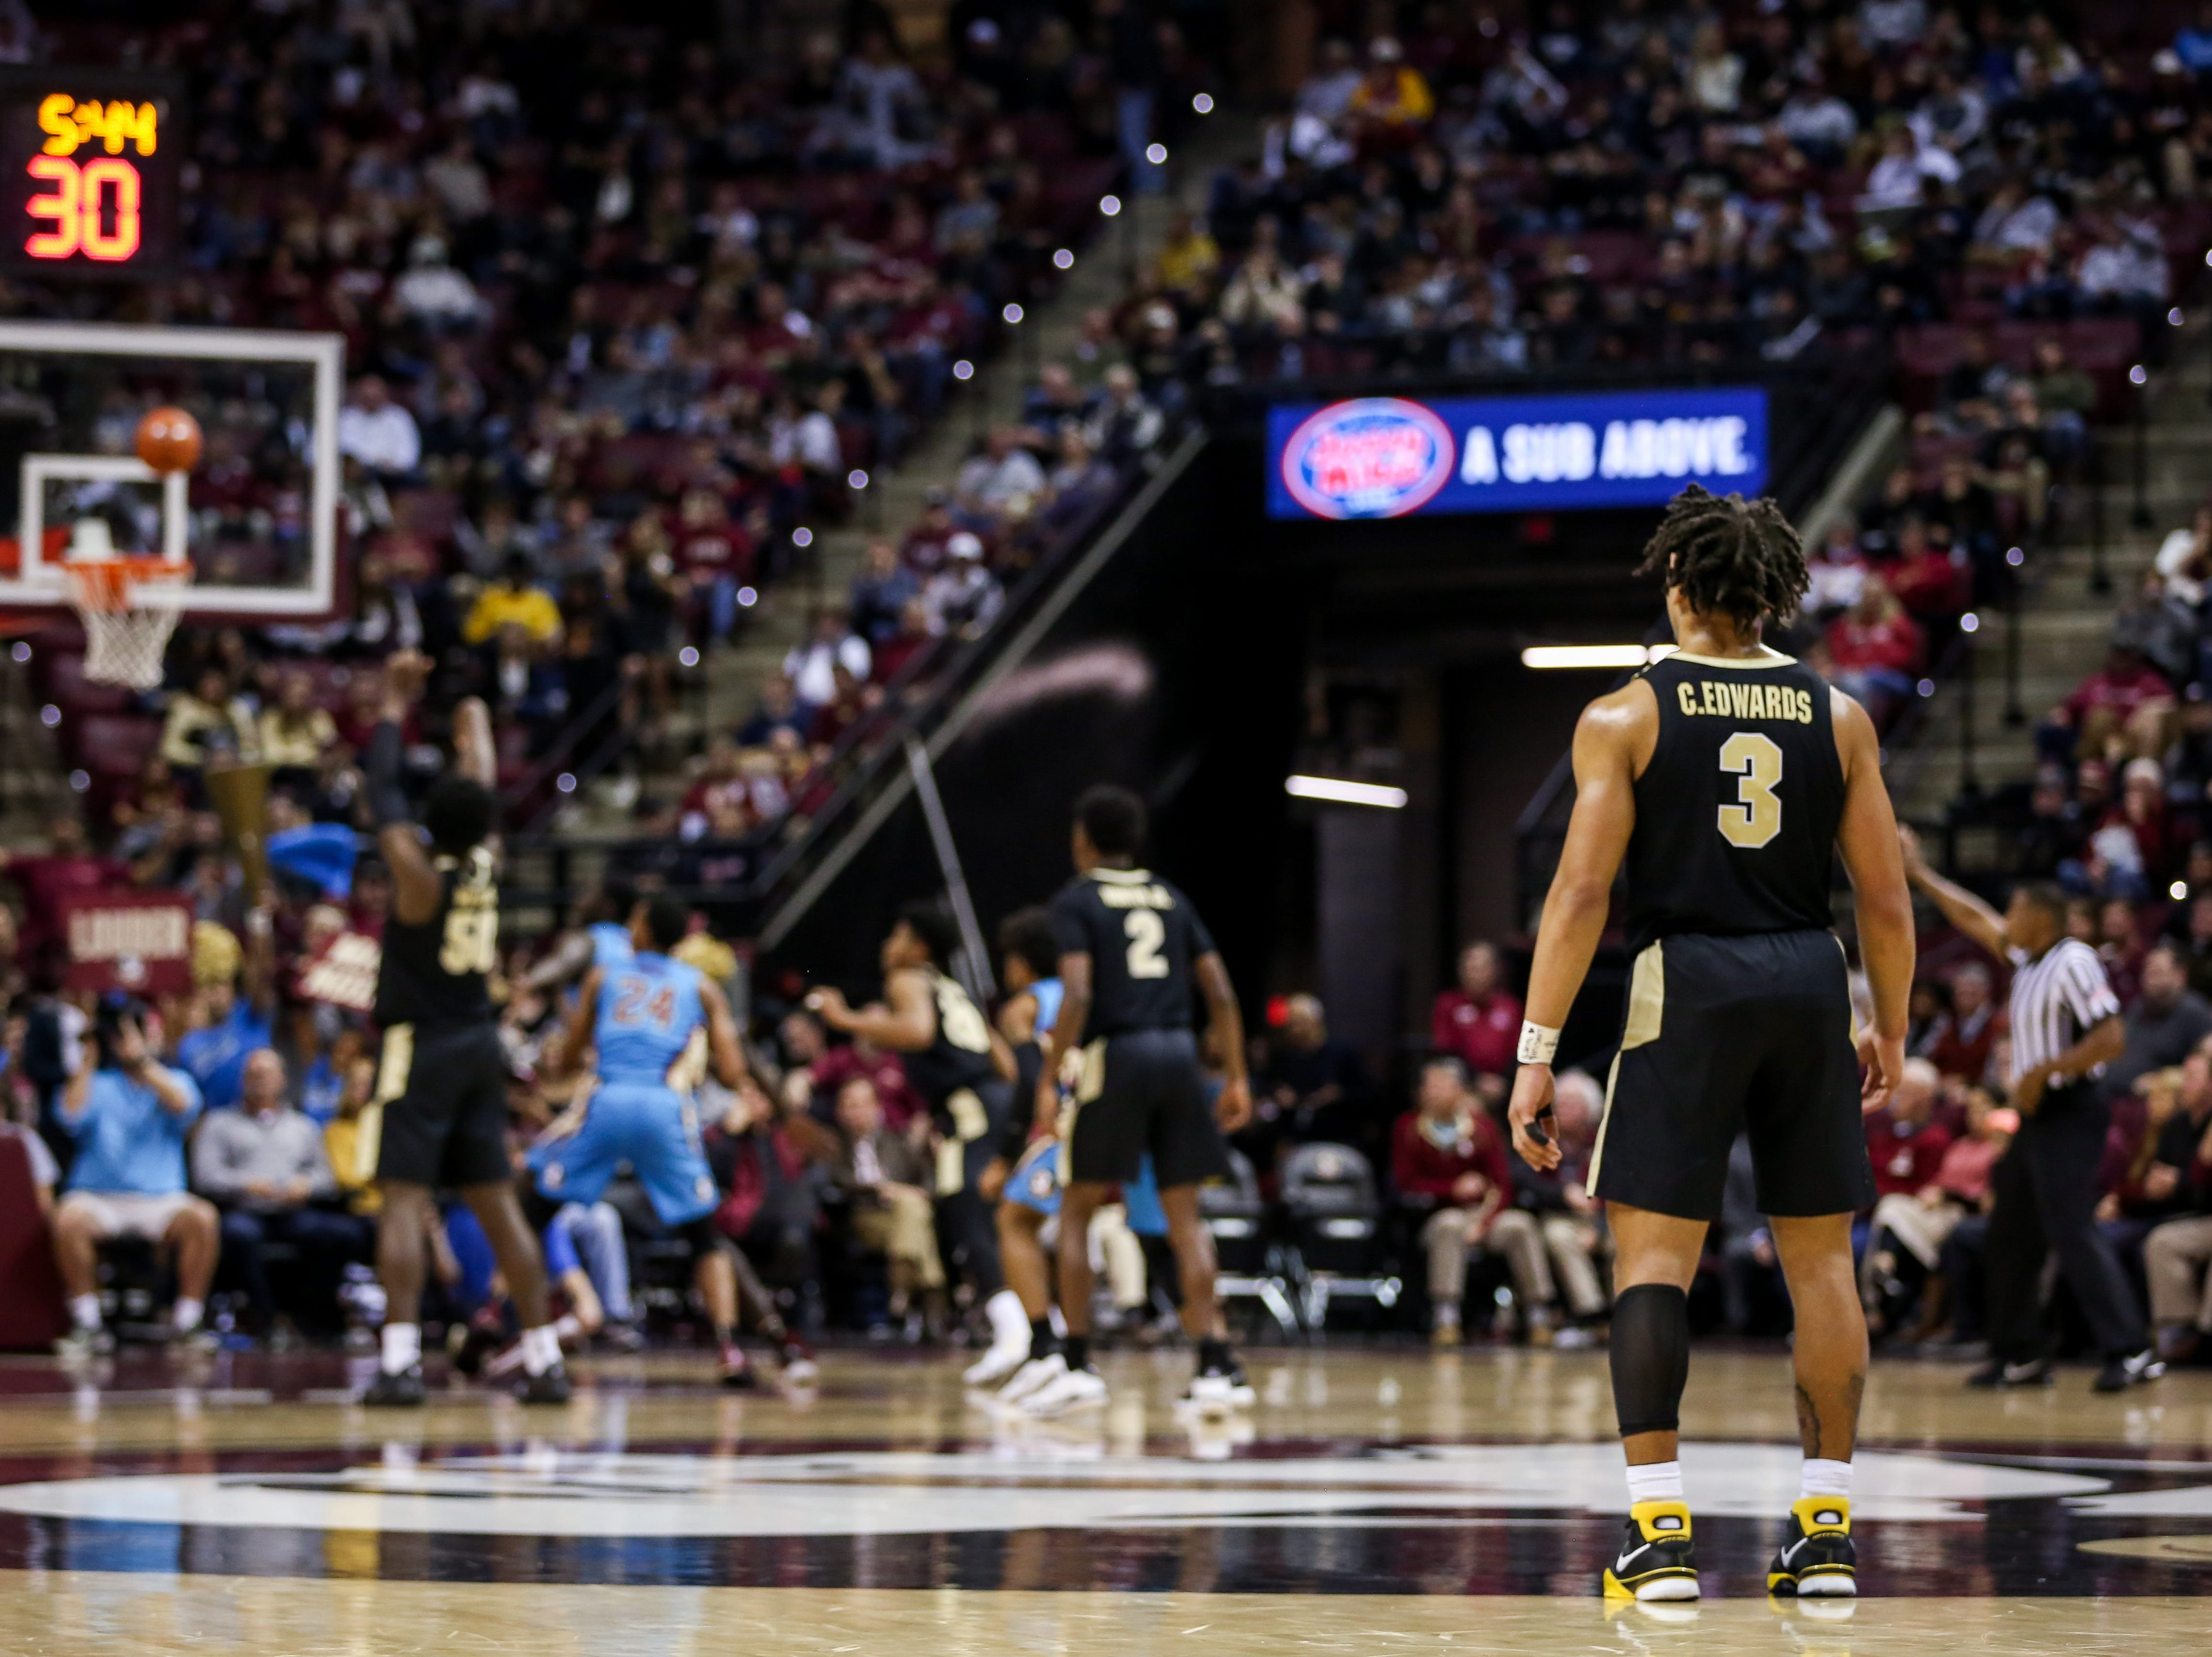 Despite Purdue's loss, Carsen Edwards (3) led the Boilermakers with a breakout 24-point performance against the Noles on Wednesday, November 28th.